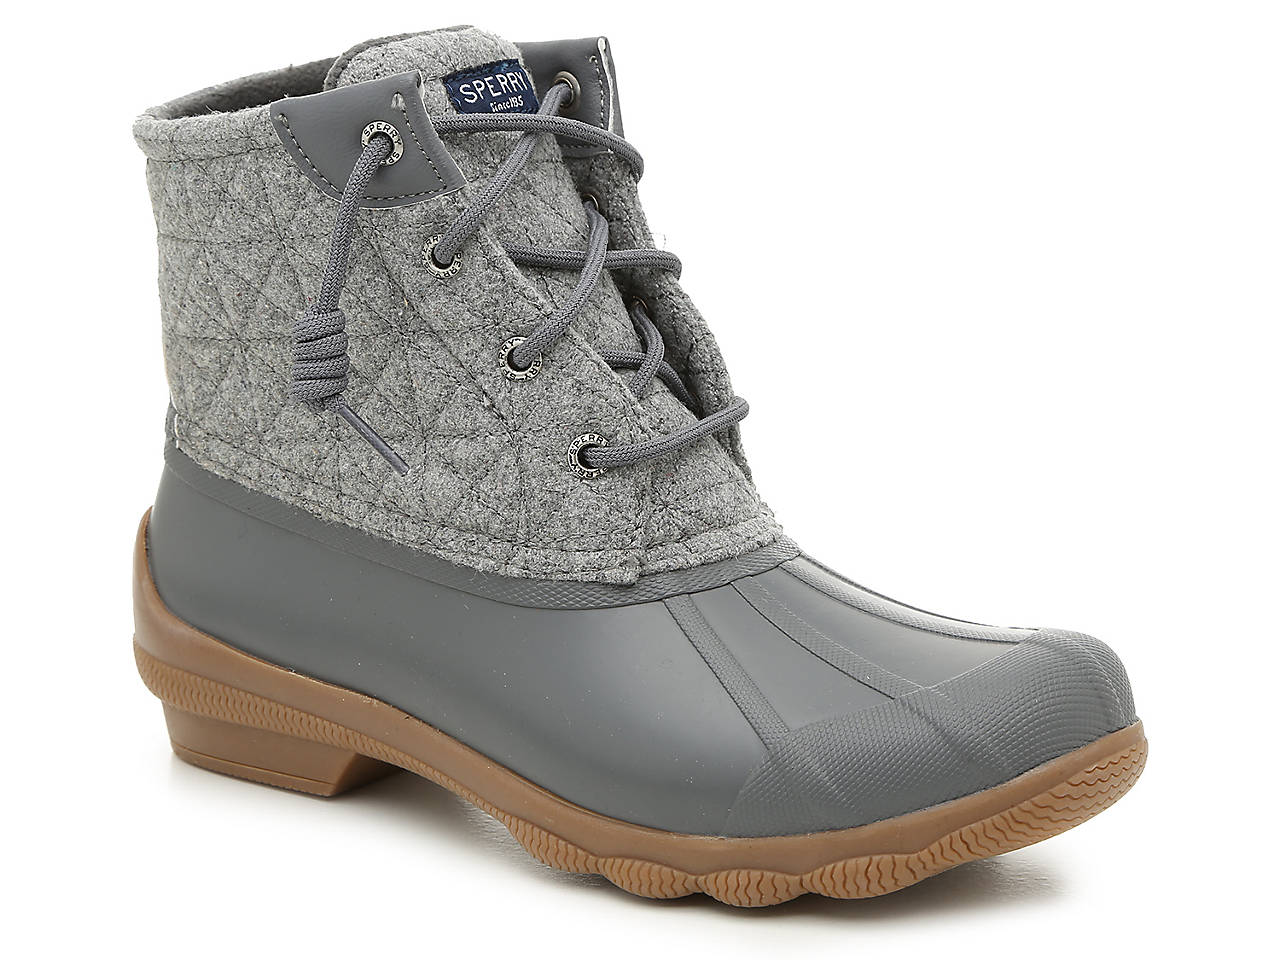 db58b8265 Sperry Top-Sider Syren Gulf Duck Boot Women's Shoes | DSW